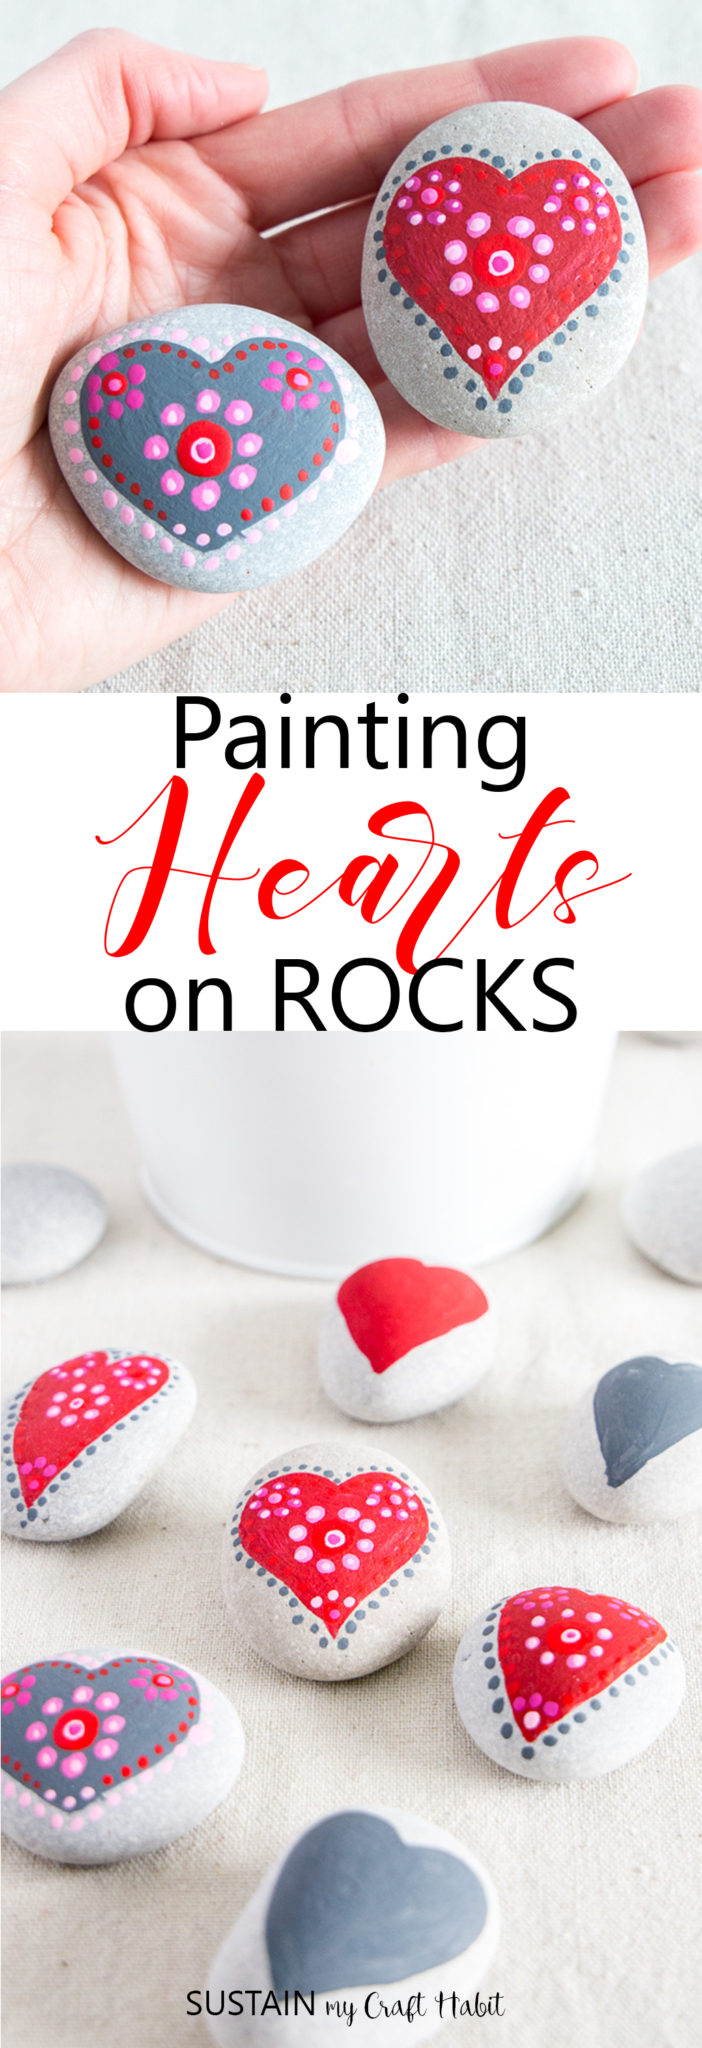 heart painting rocks